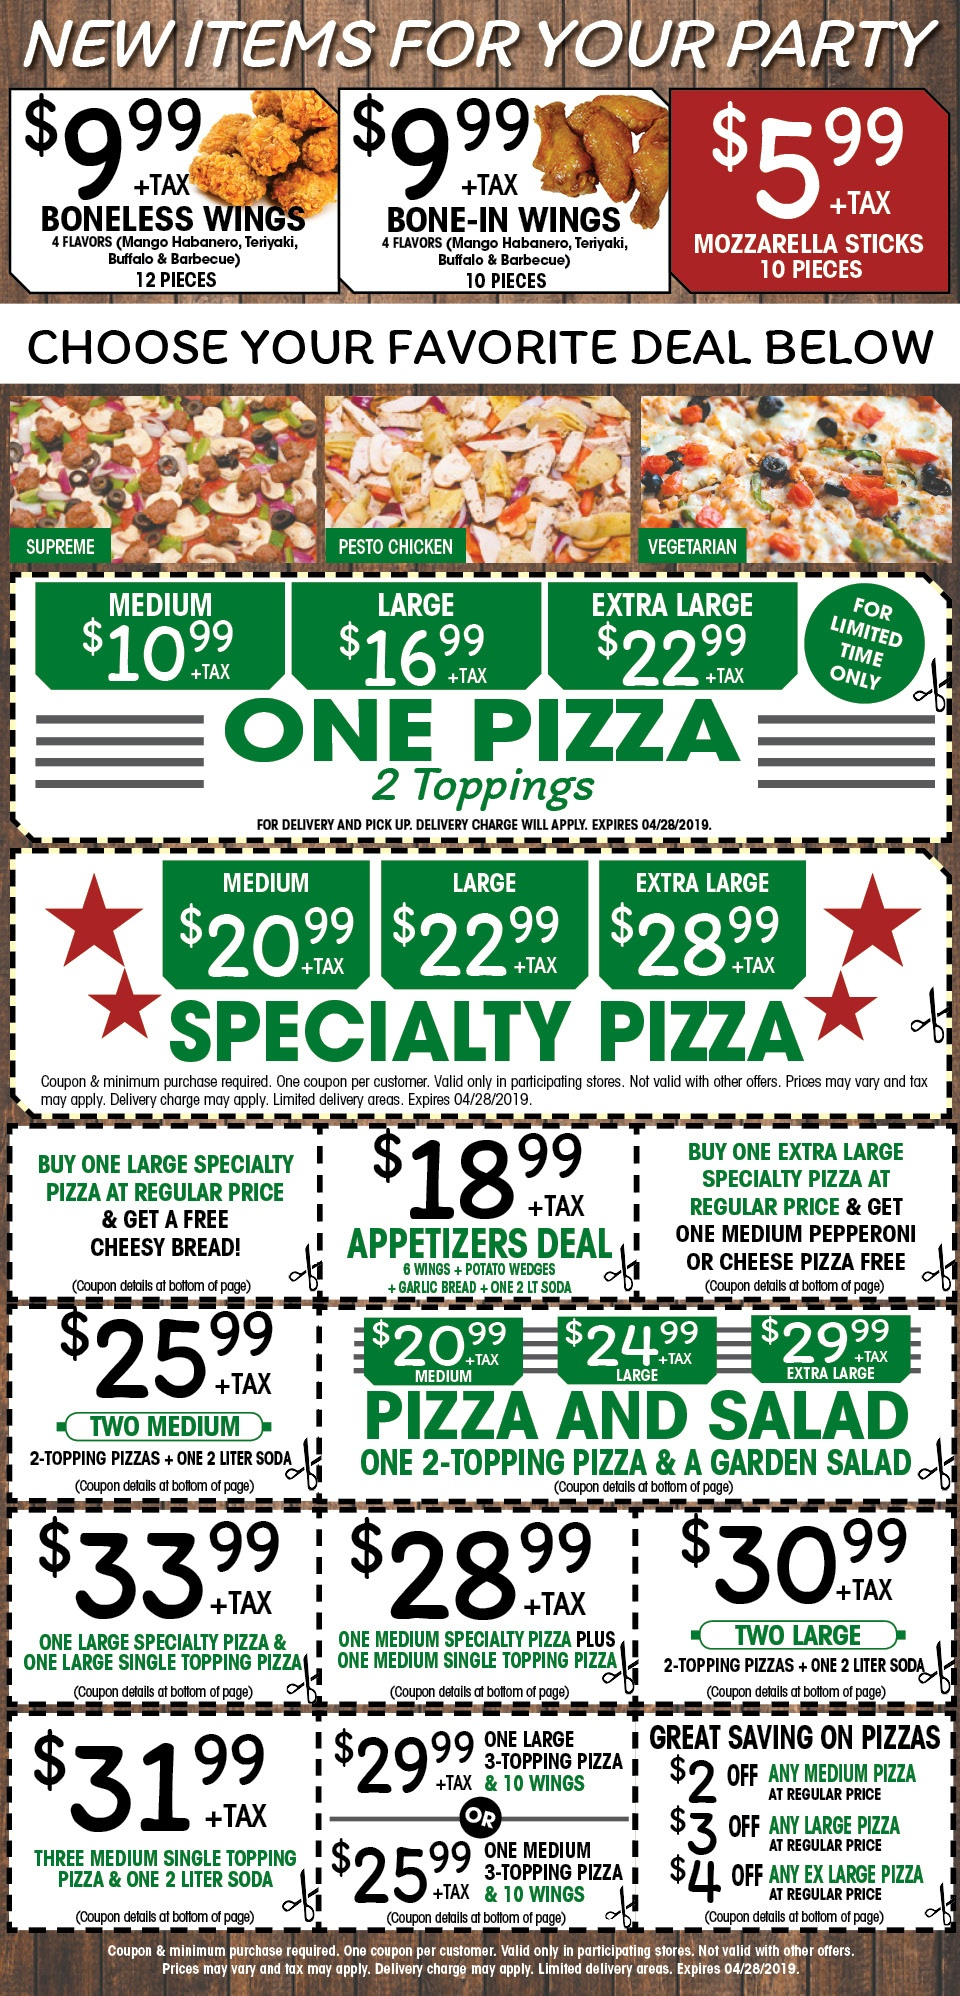 Via Mia Pizza on Camden Ave, San Jose, CA - Coupons 2019